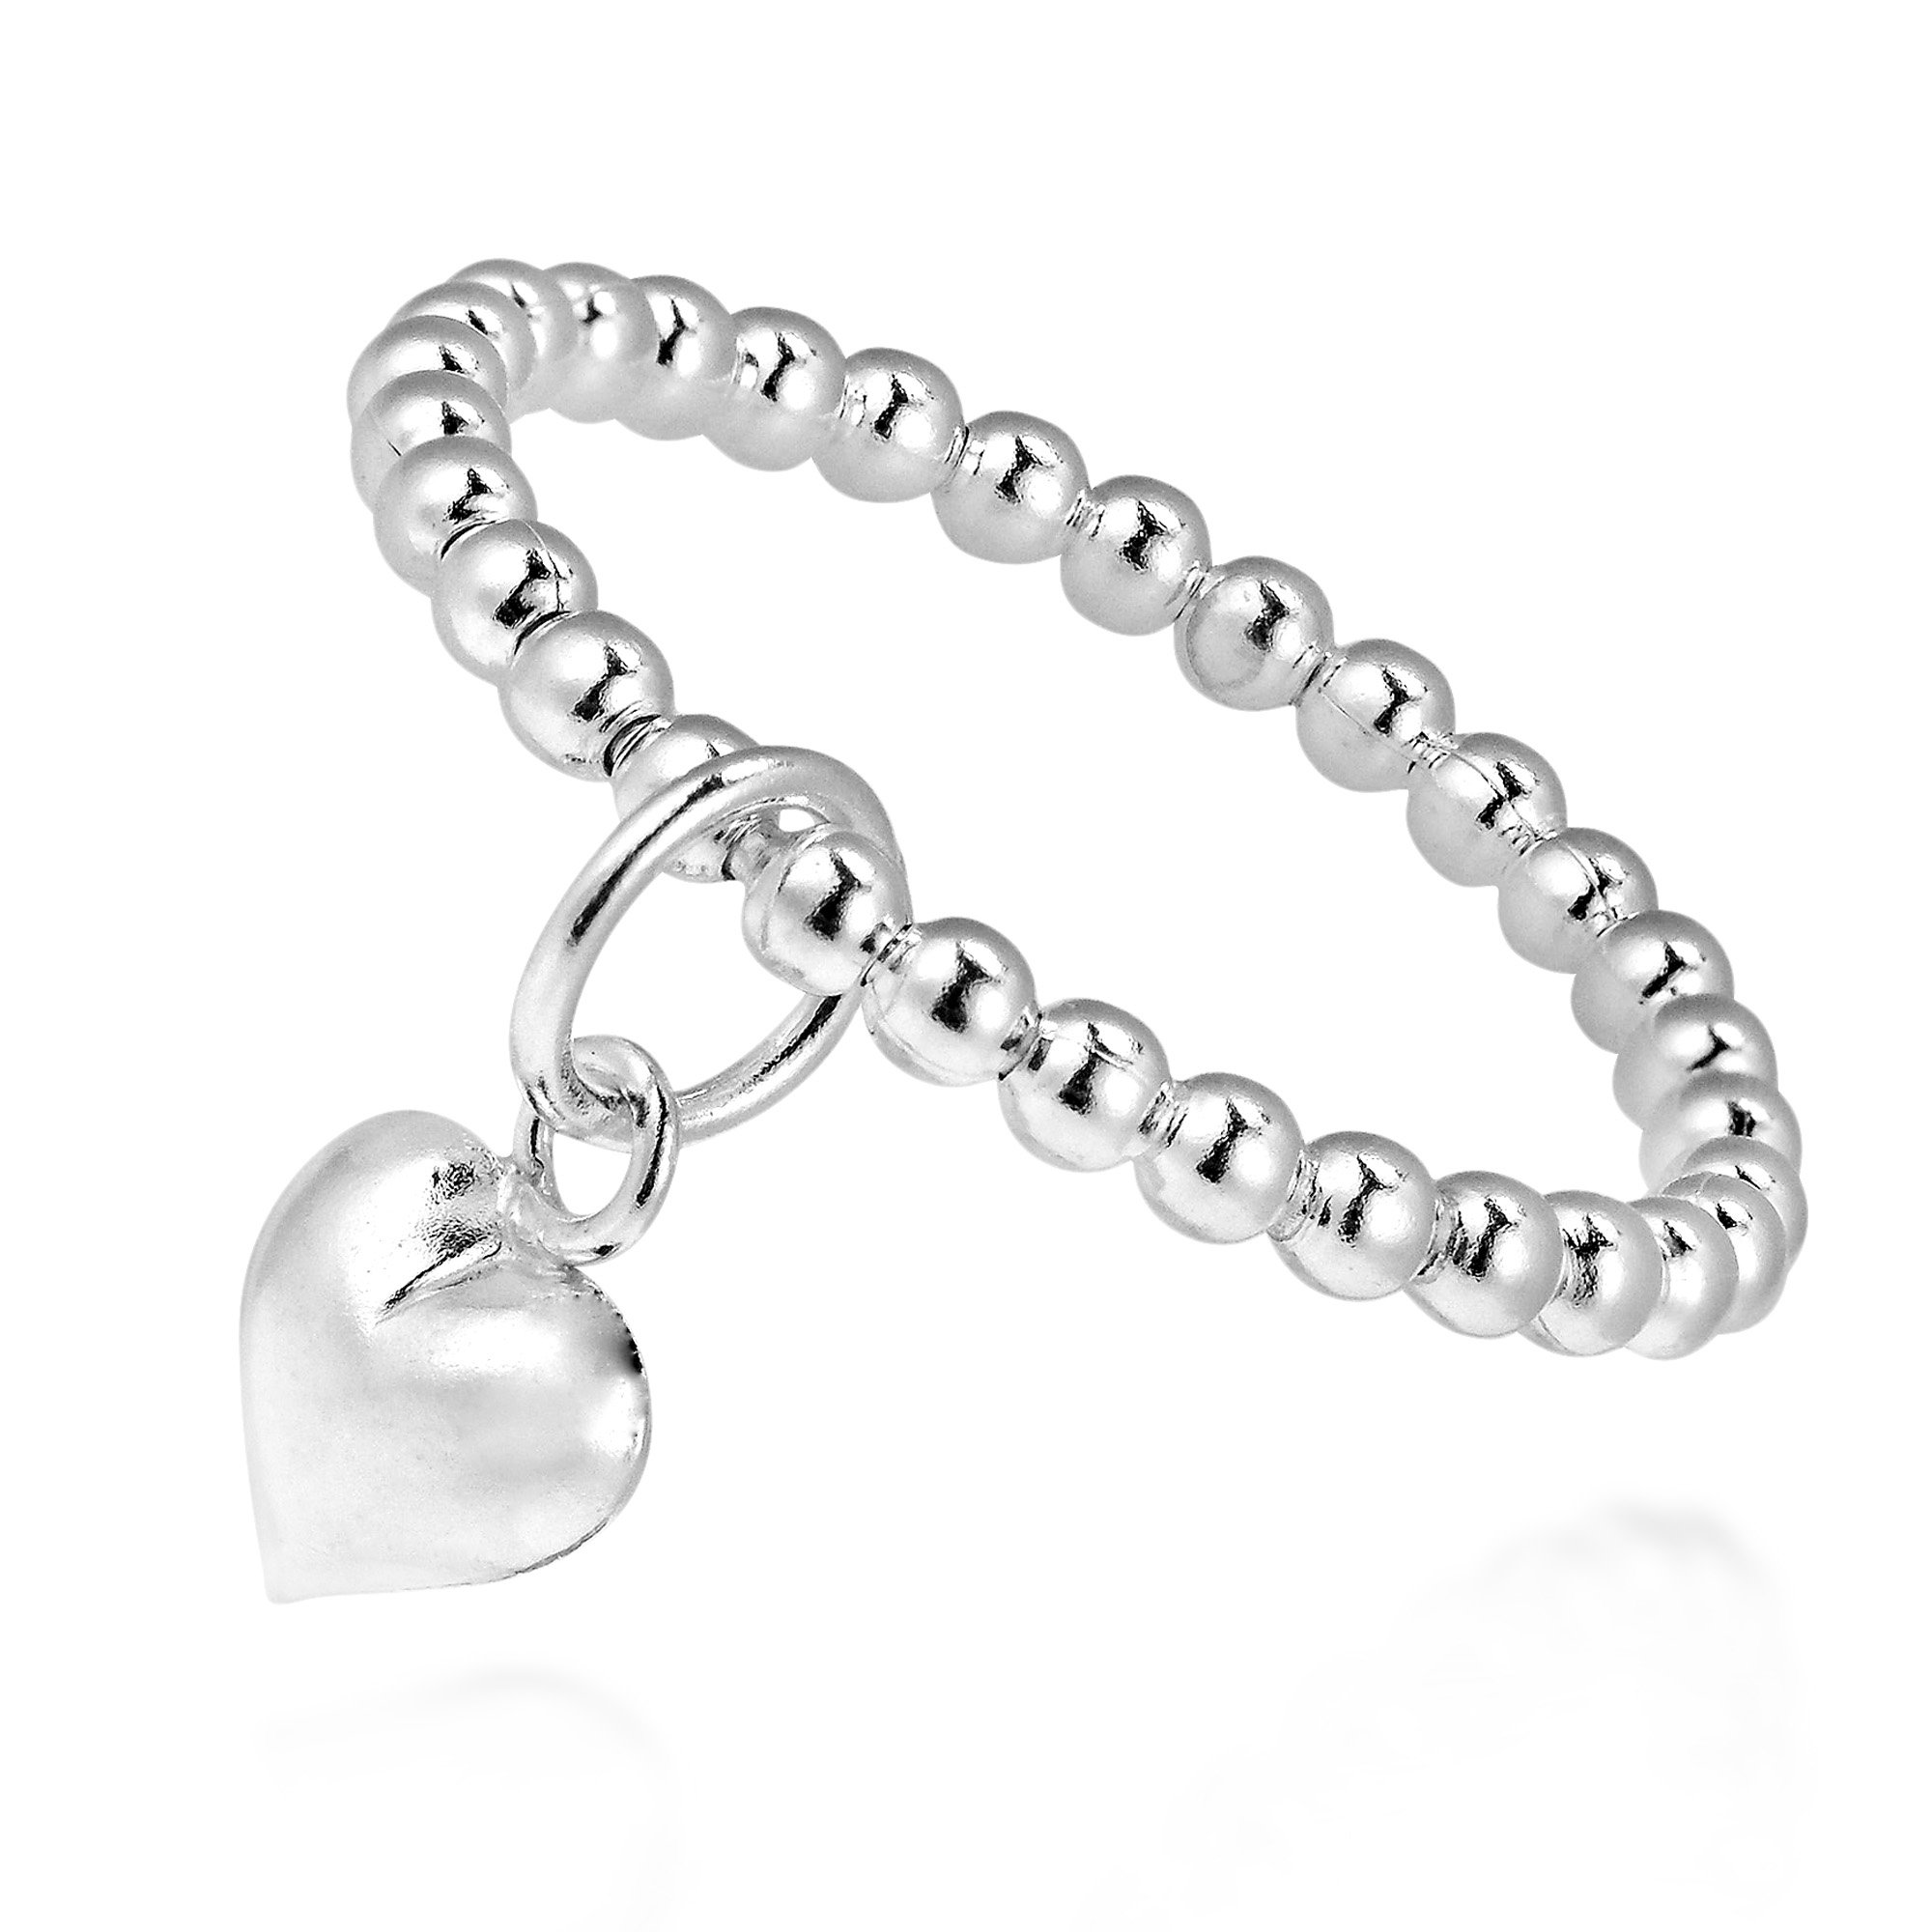 Adorable Heart Dangle Eternal Love Beaded Sterling Silver Ring (7)